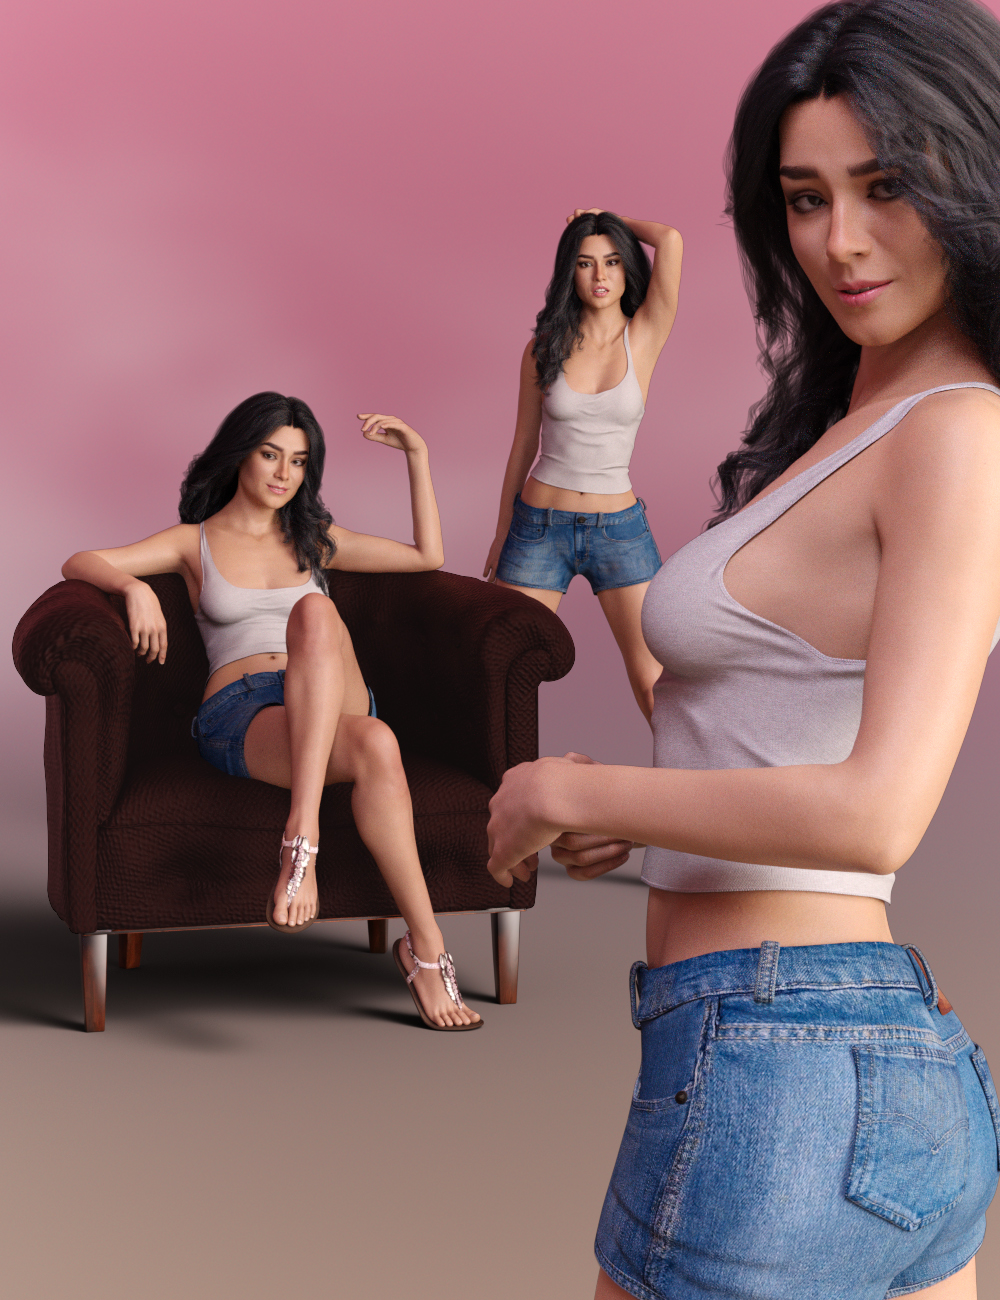 Delight Poses for Gabriela 8 and Genesis 8 Female by: lunchlady, 3D Models by Daz 3D